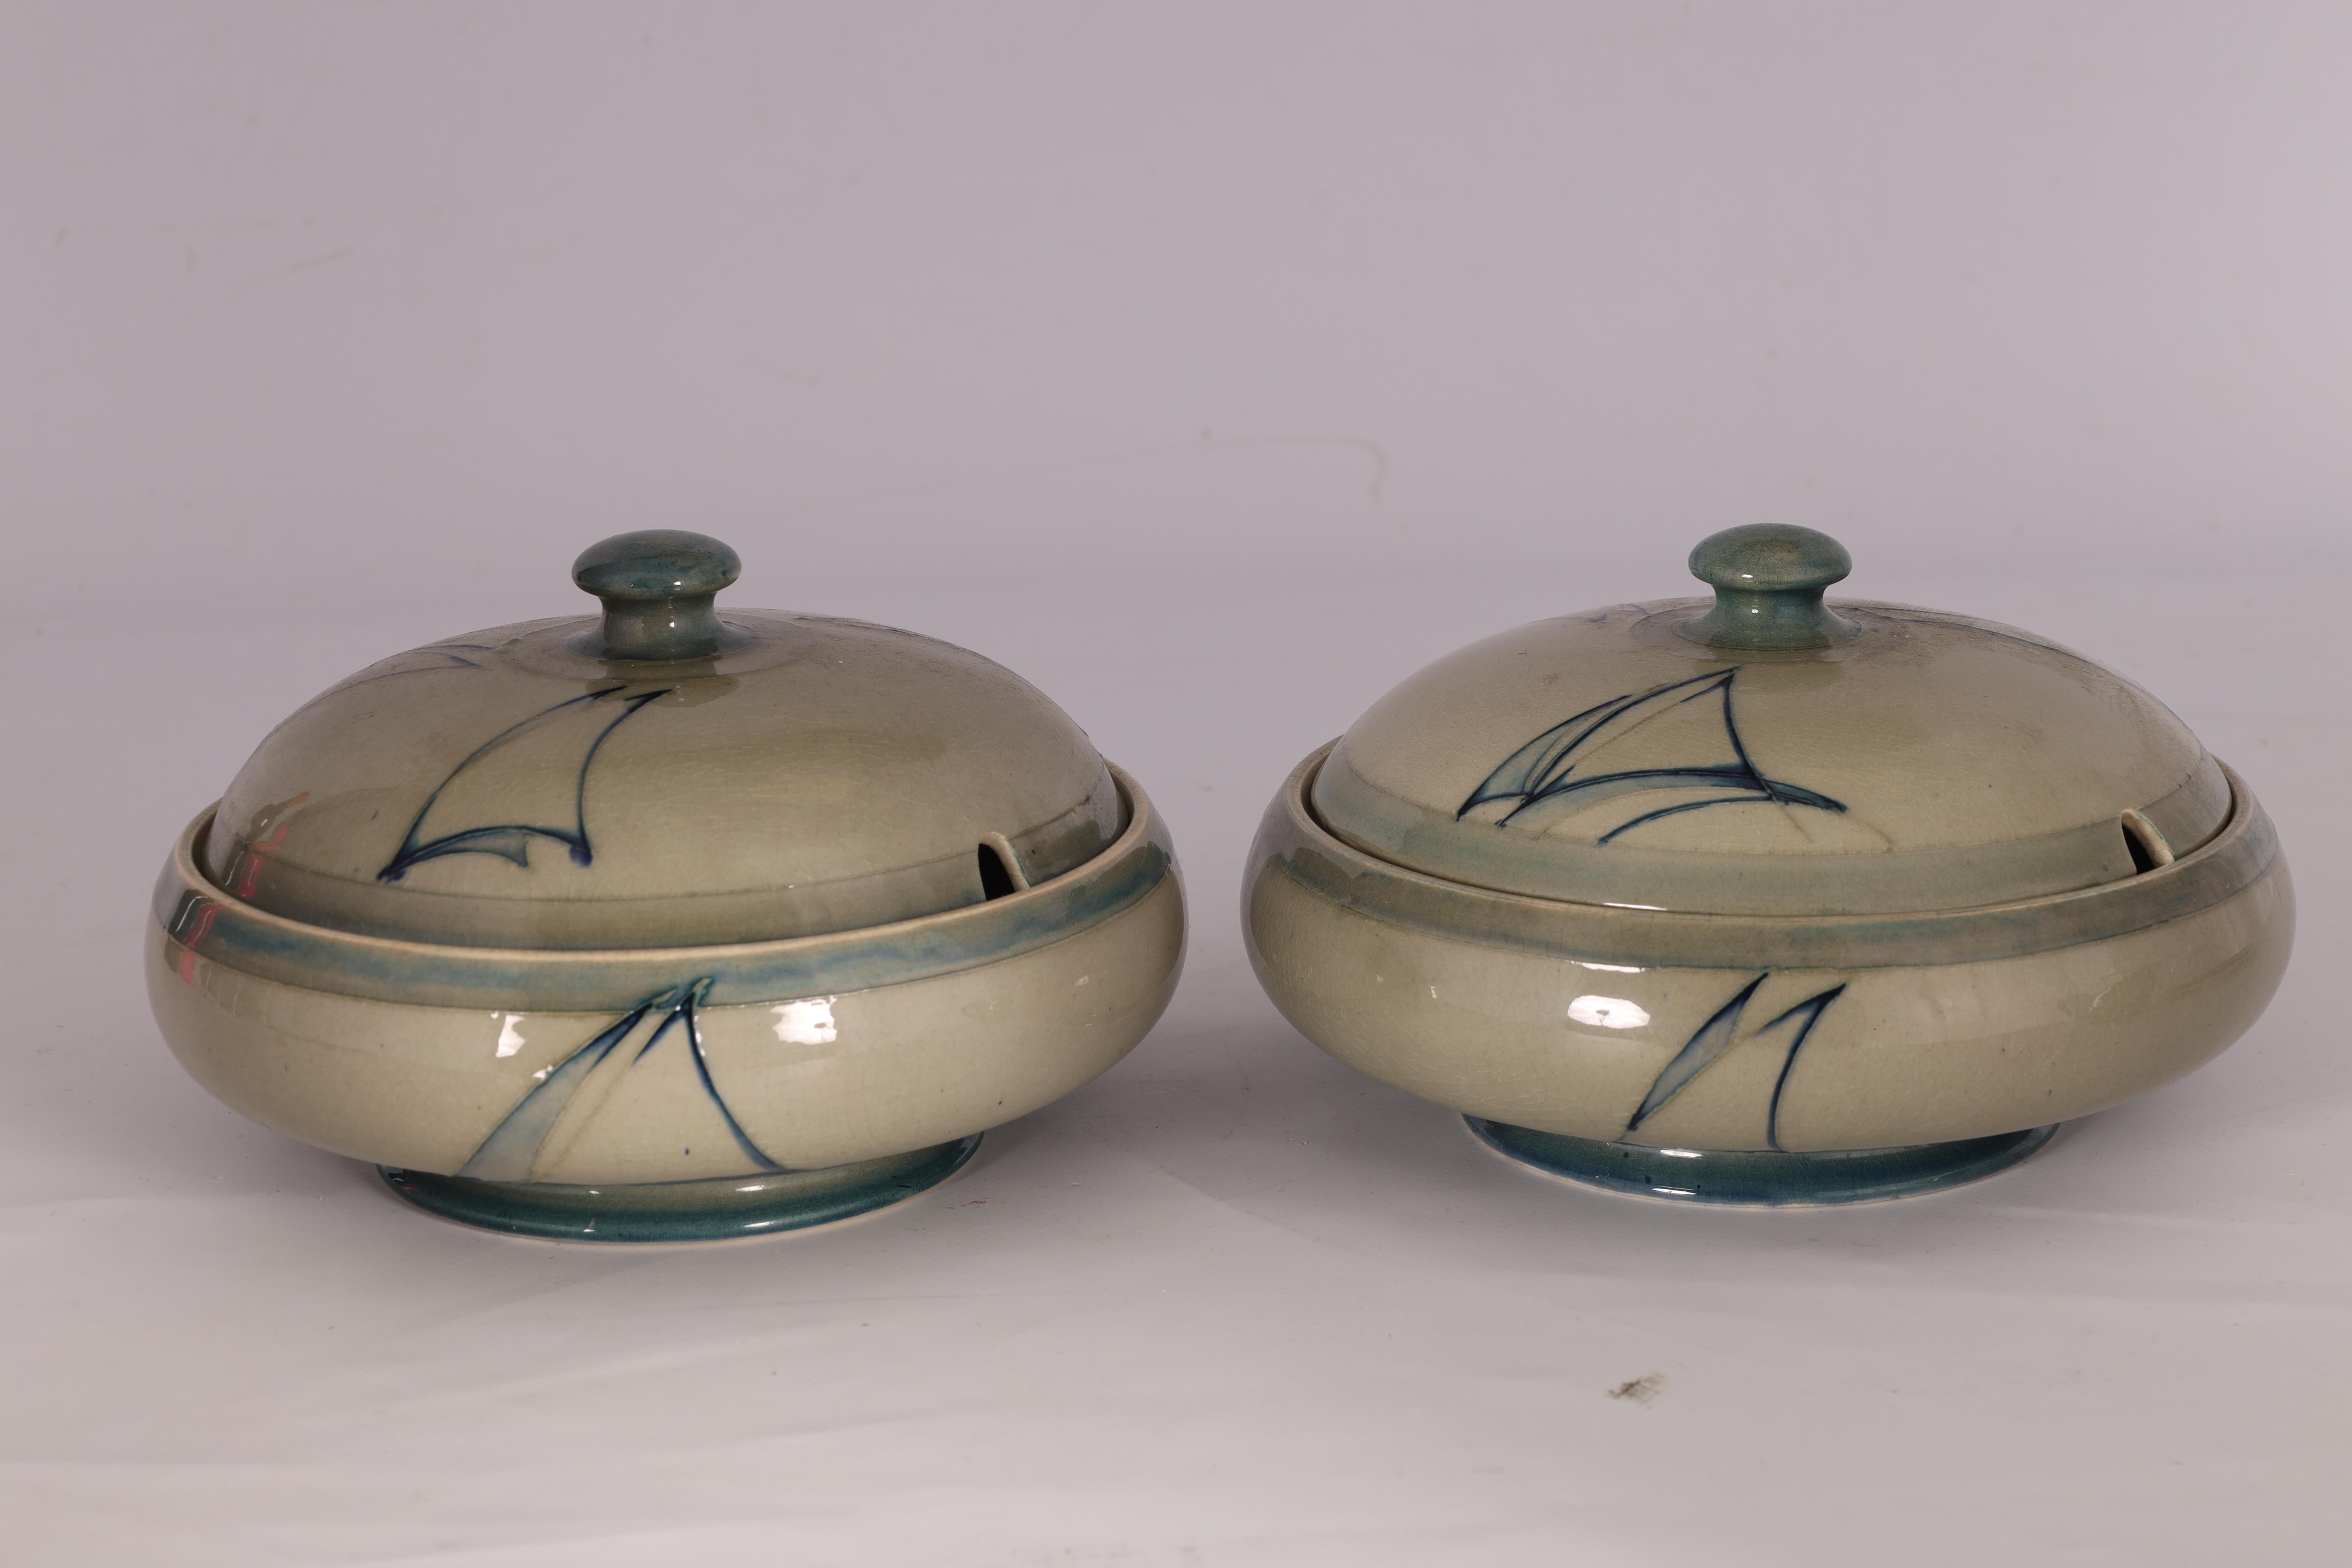 A PAIR OF MOORCROFT LIDDED TABLE TUREENS decorated in the Yacht pattern on a celadon ground, 19. - Image 3 of 12